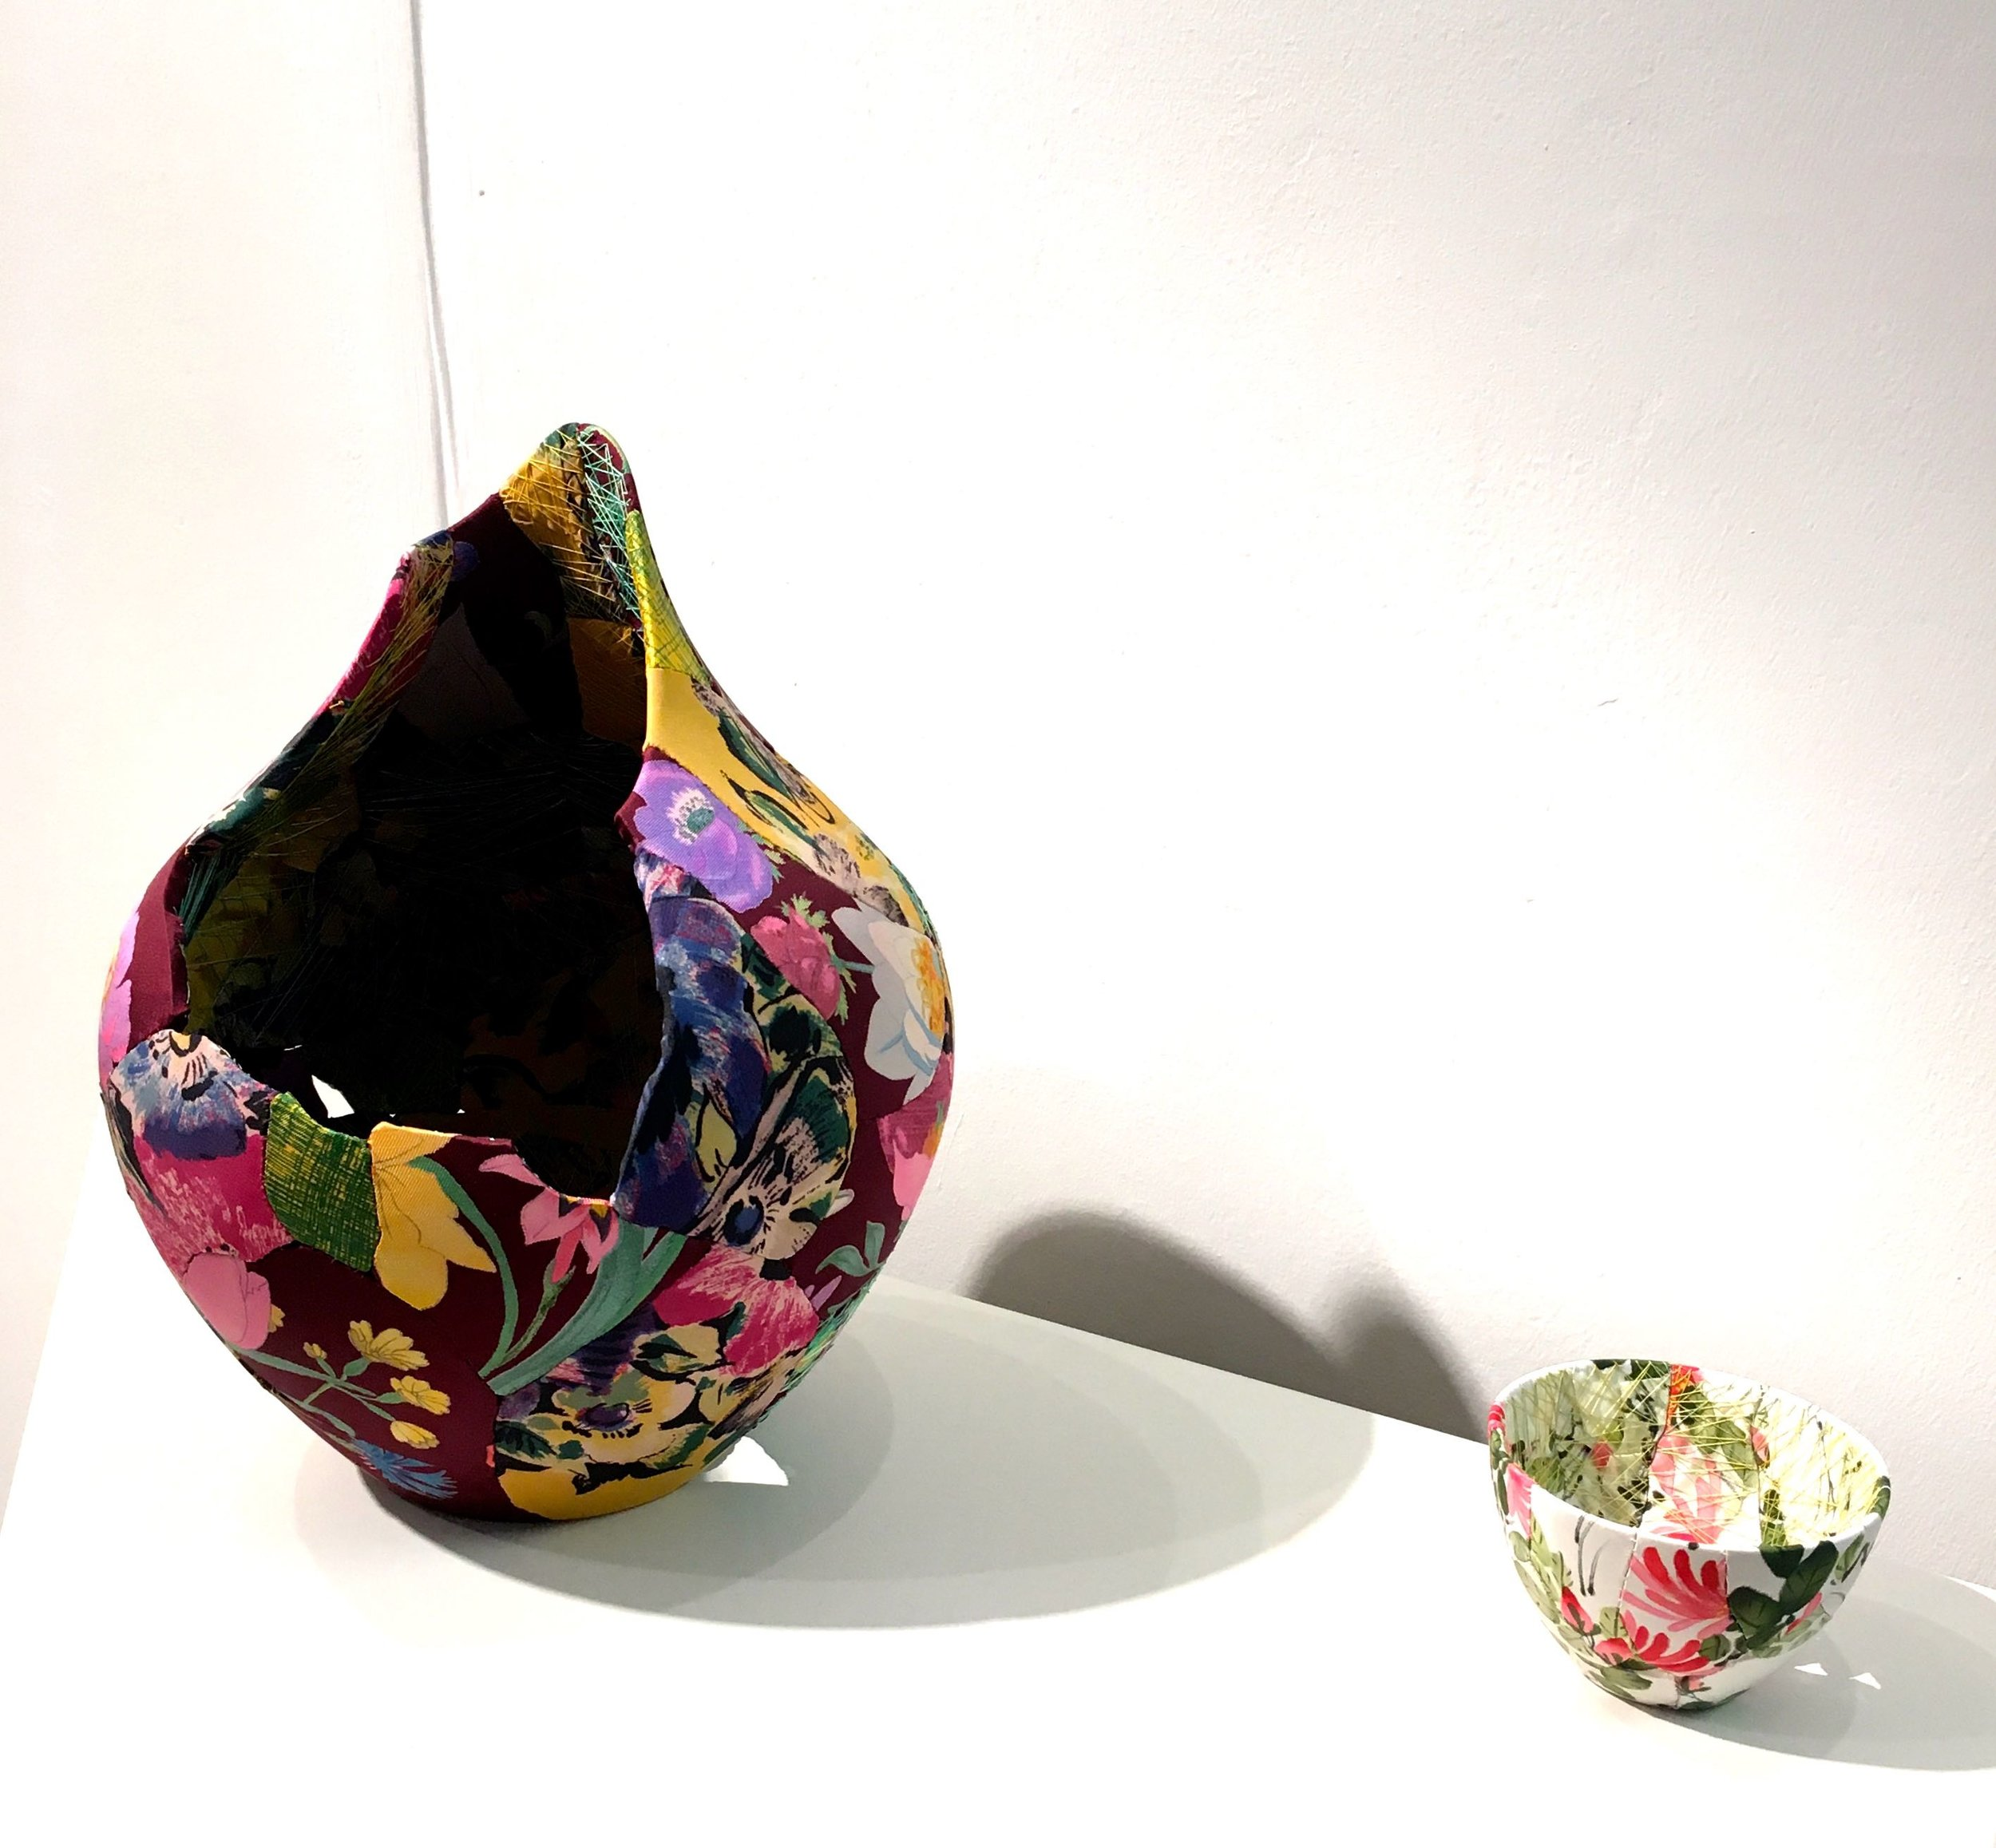 fragments of pottery covered in silk and sewn together to create pieces of art